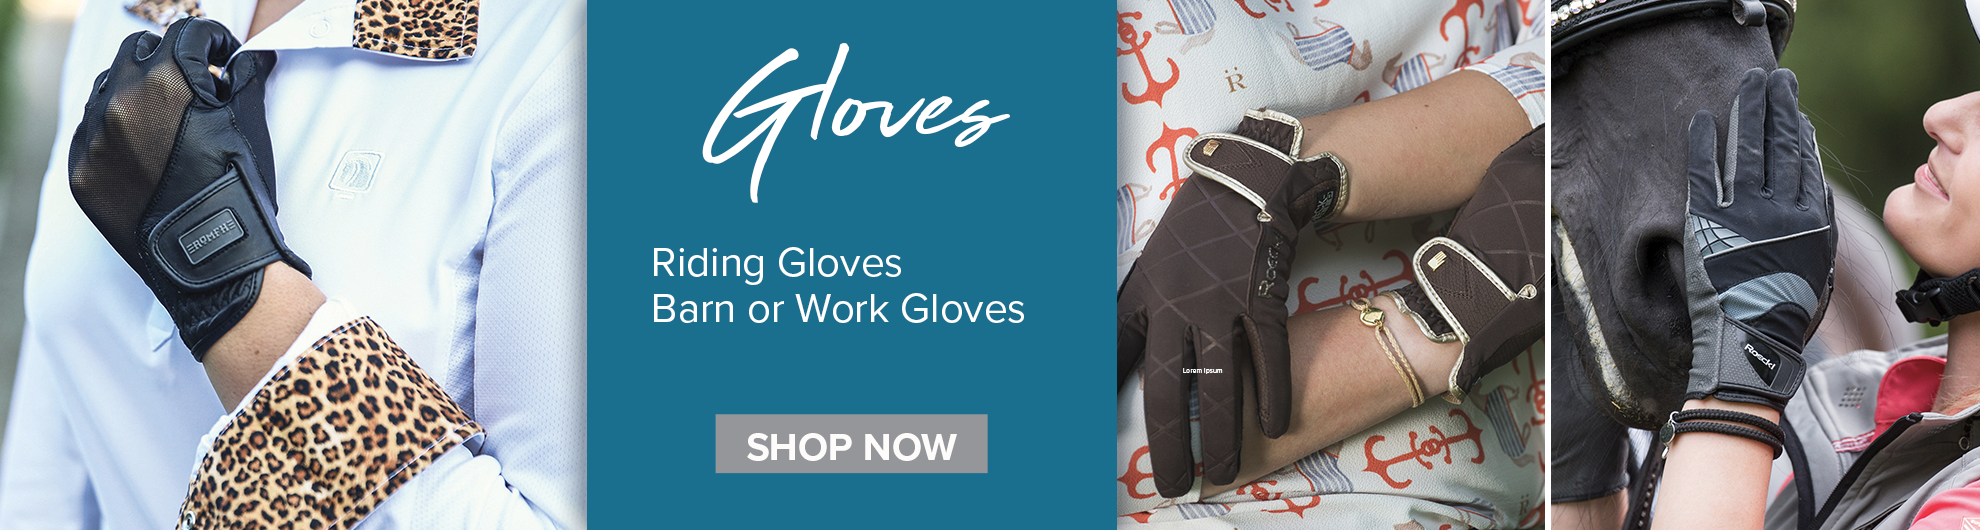 Shop for Riding & Work Gloves on Equishopper